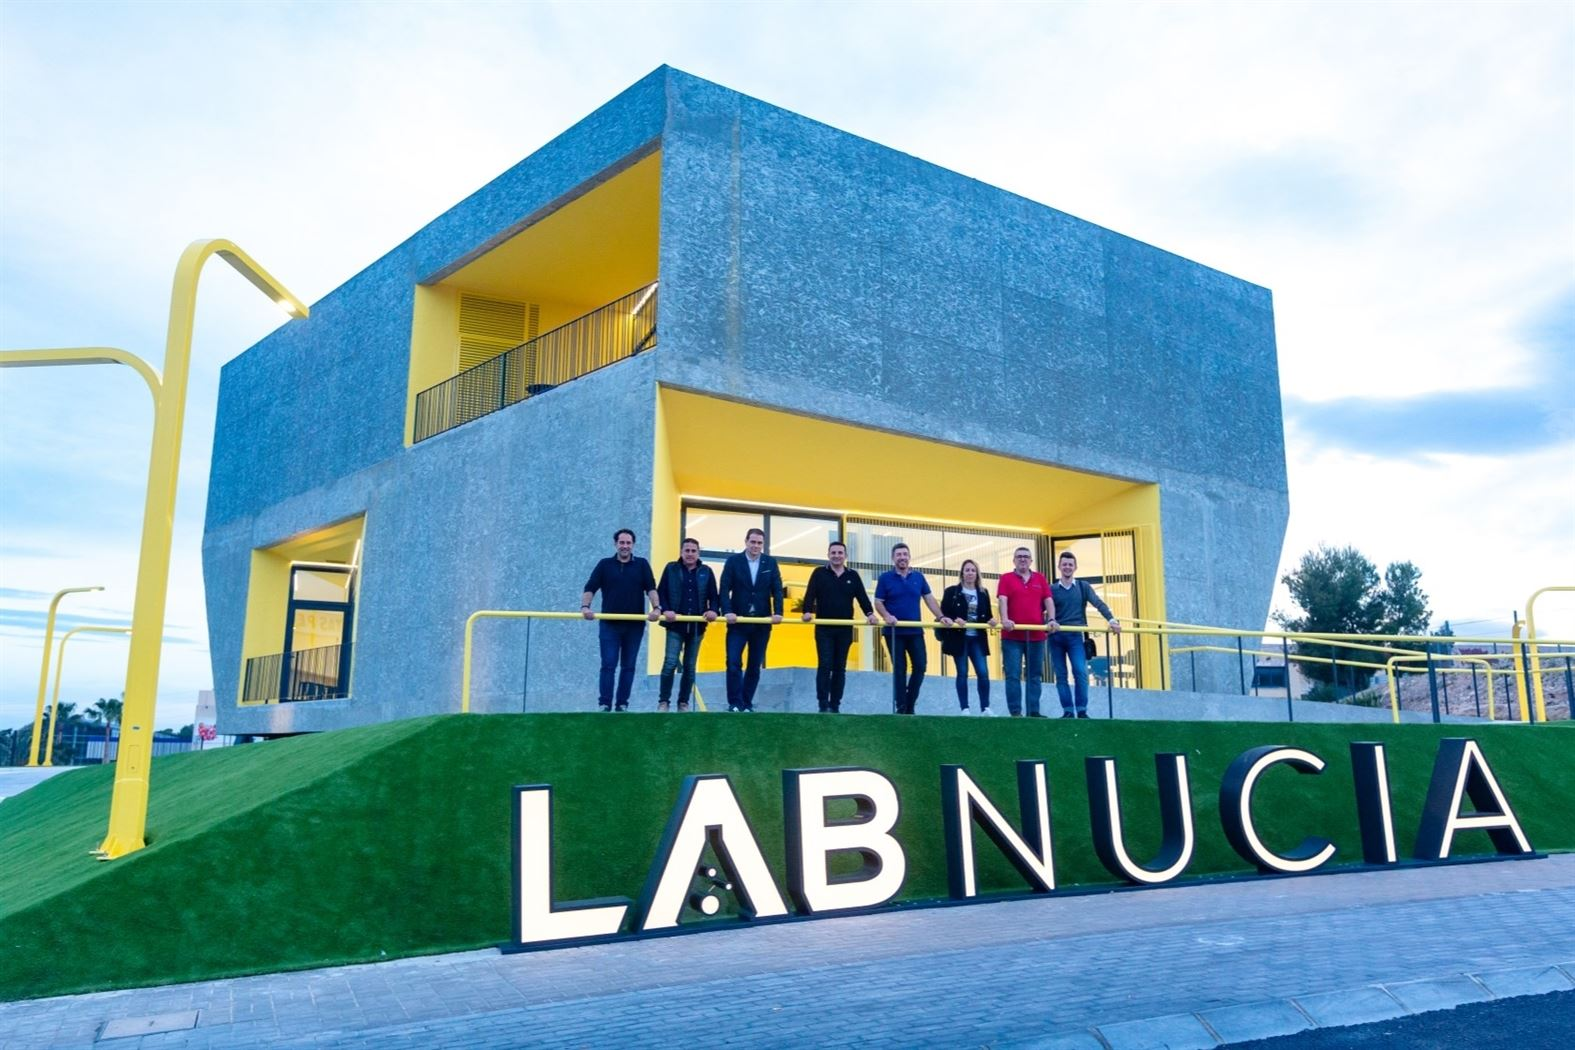 LAB_NUCIA - Edificio interior